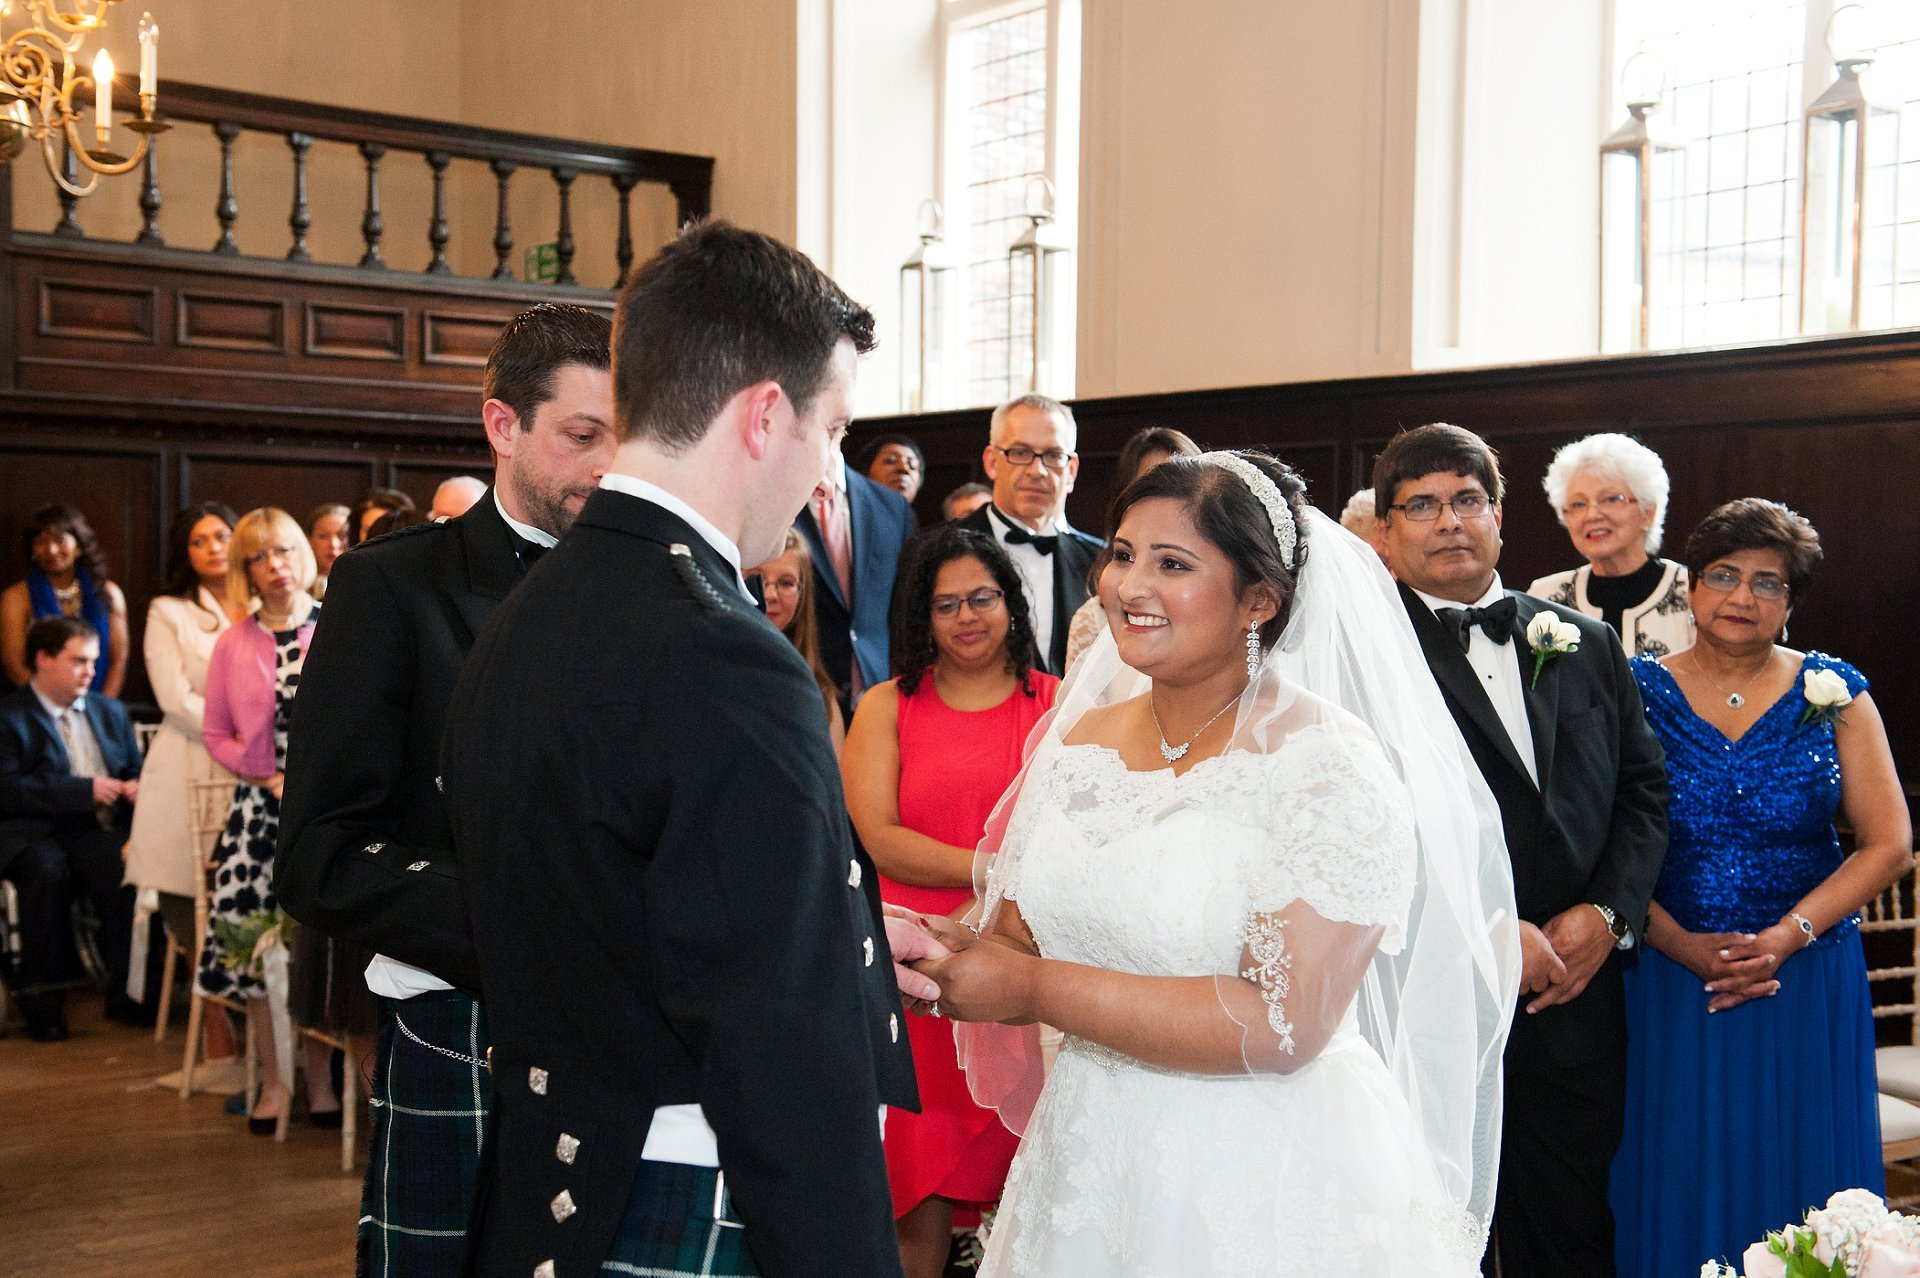 Feriel exchanges rings with Adam during their Fulham Palace Great Hall wedding